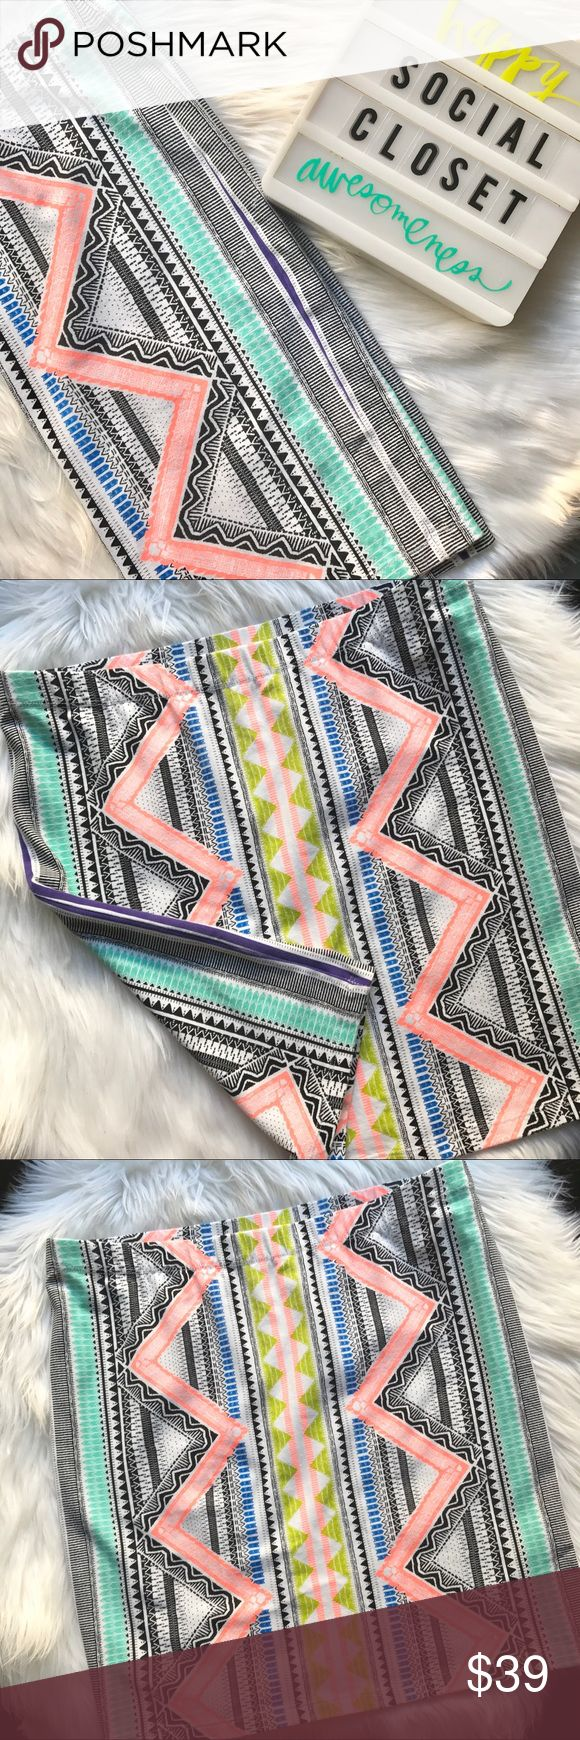 SPORTSGIRL Aztec print skirt Stand out in the crowd with this Aztec print skirt in FUN, BRIGHT colors! Purchased in Australia and wore to a beach event in Sydney...it was perfect!!💋 Worn once, like new✨ Sportsgirl Skirts